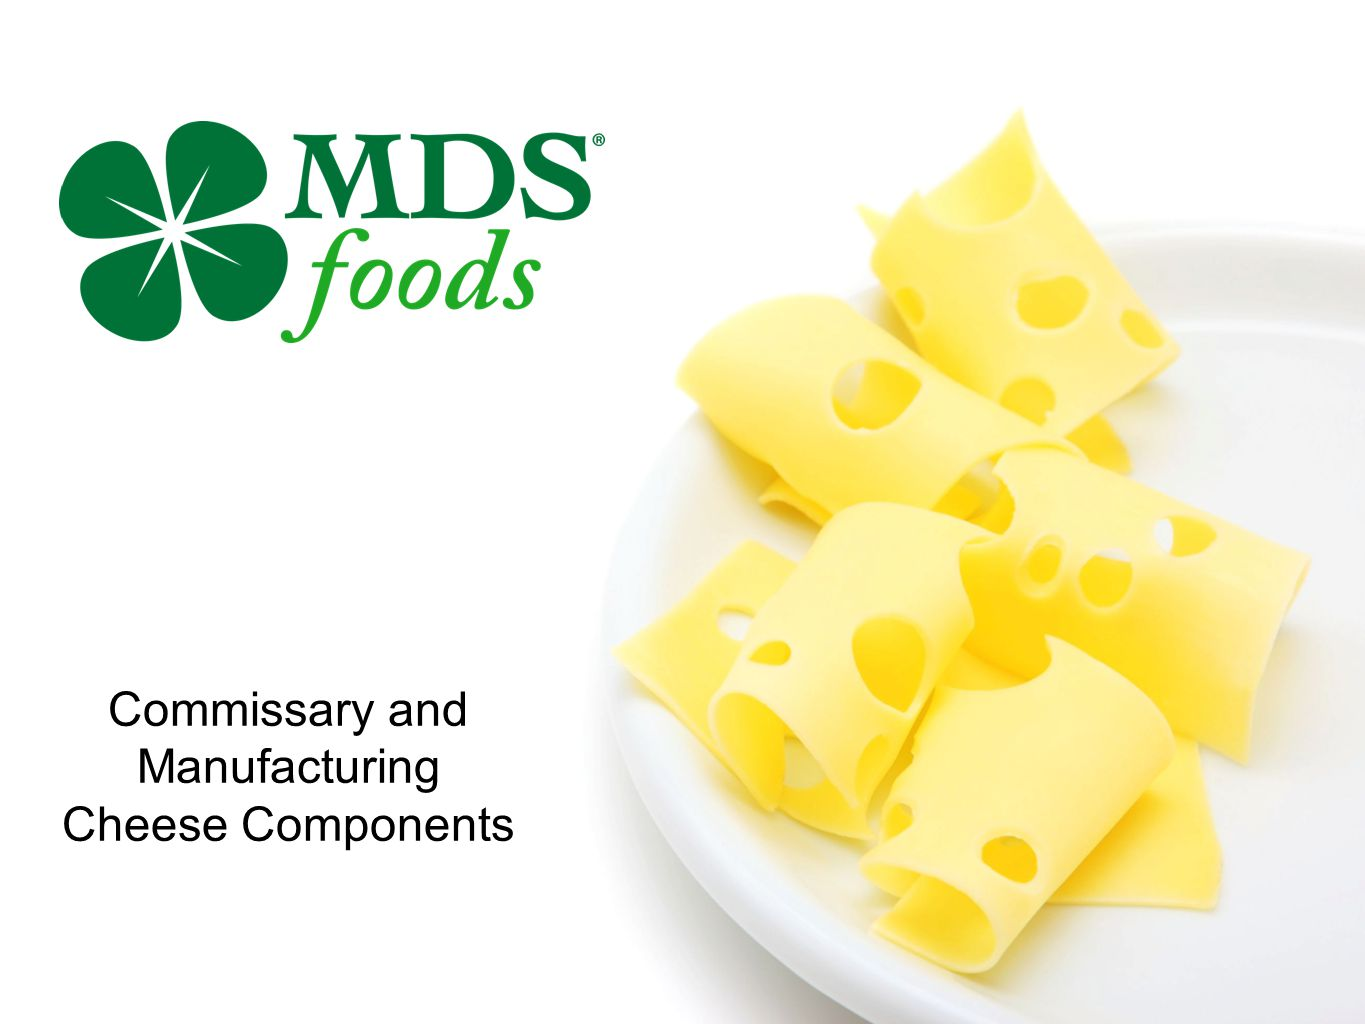 Commissary and Manufacturing Cheese Components